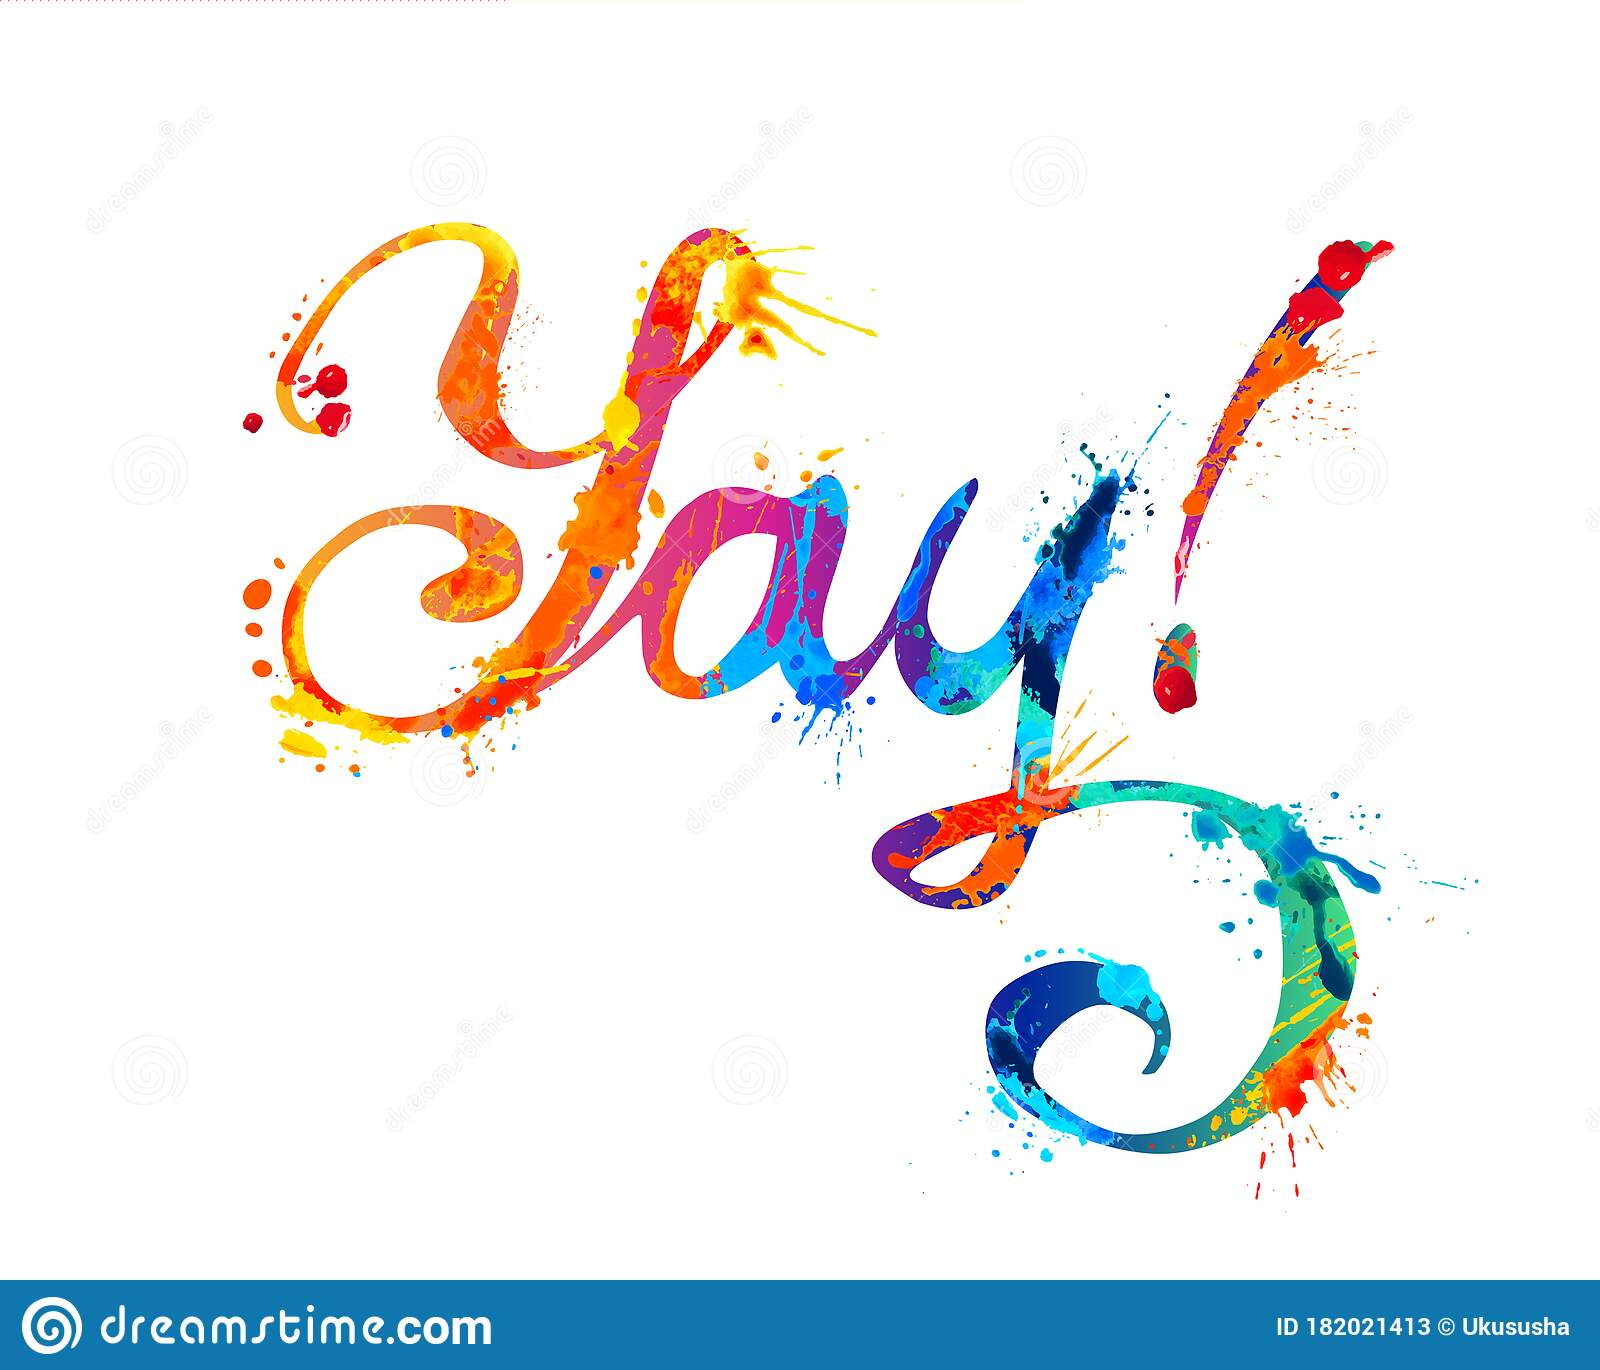 Word Yay Stock Illustrations – 127 Word Yay Stock Illustrations, Vectors &  Clipart - Dreamstime